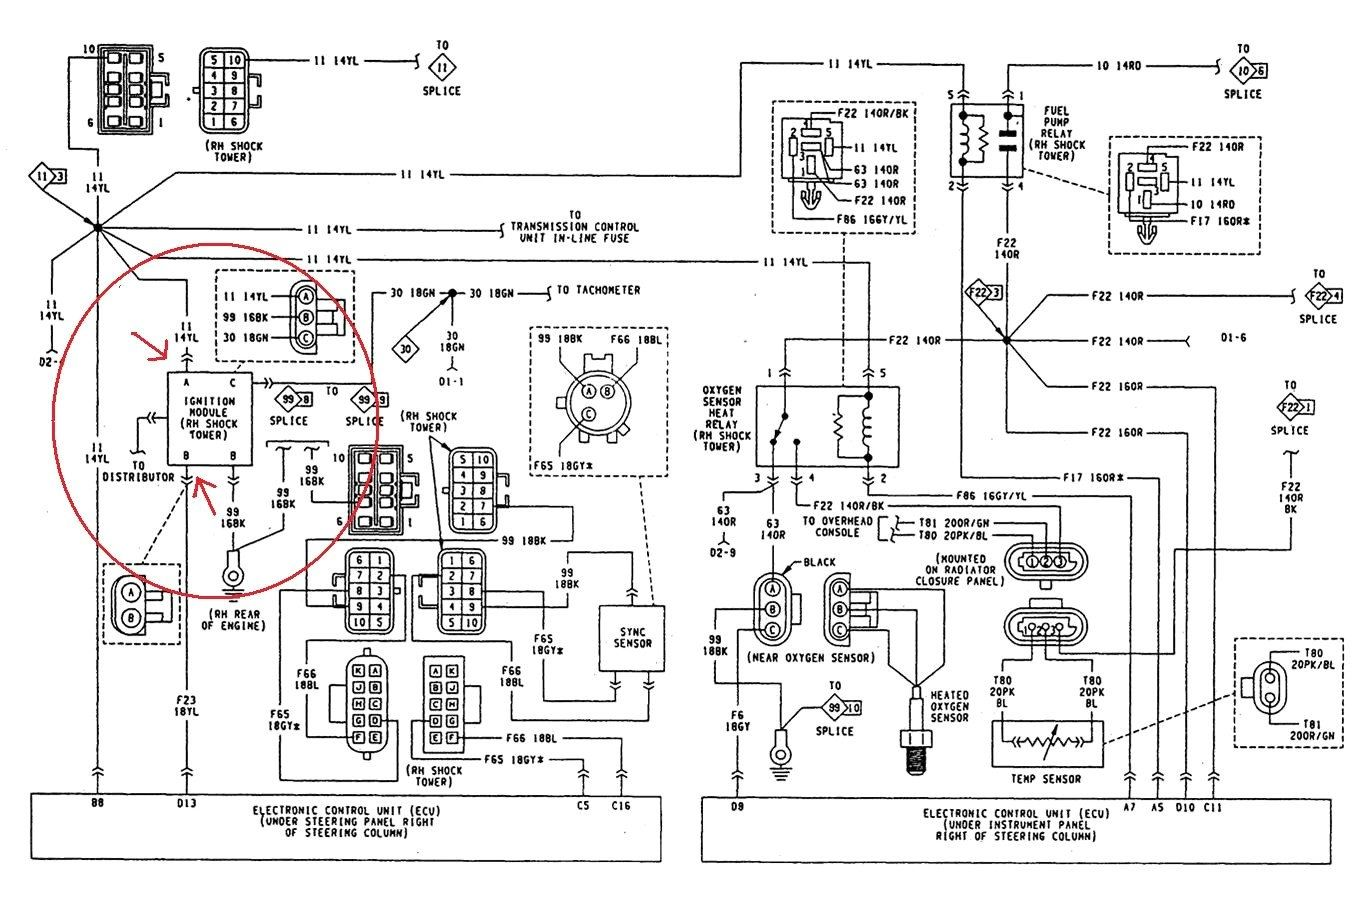 1990 Jeep Wrangler Vacuum Diagram Wiring Libraries 4 2 Engine Yj